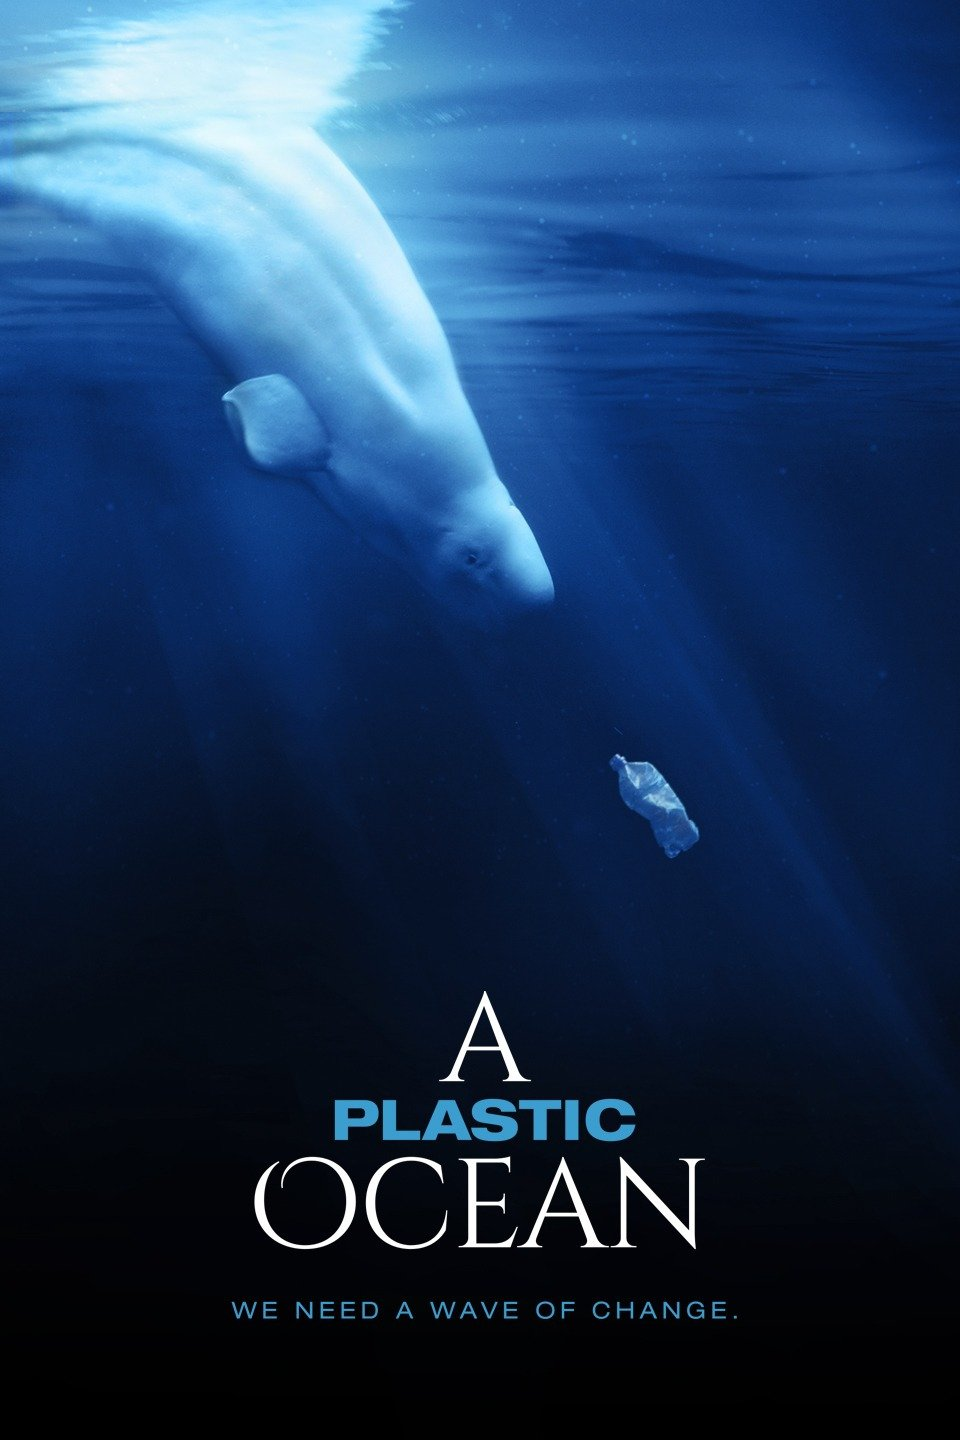 October Ocean Night – A Plastic Ocean